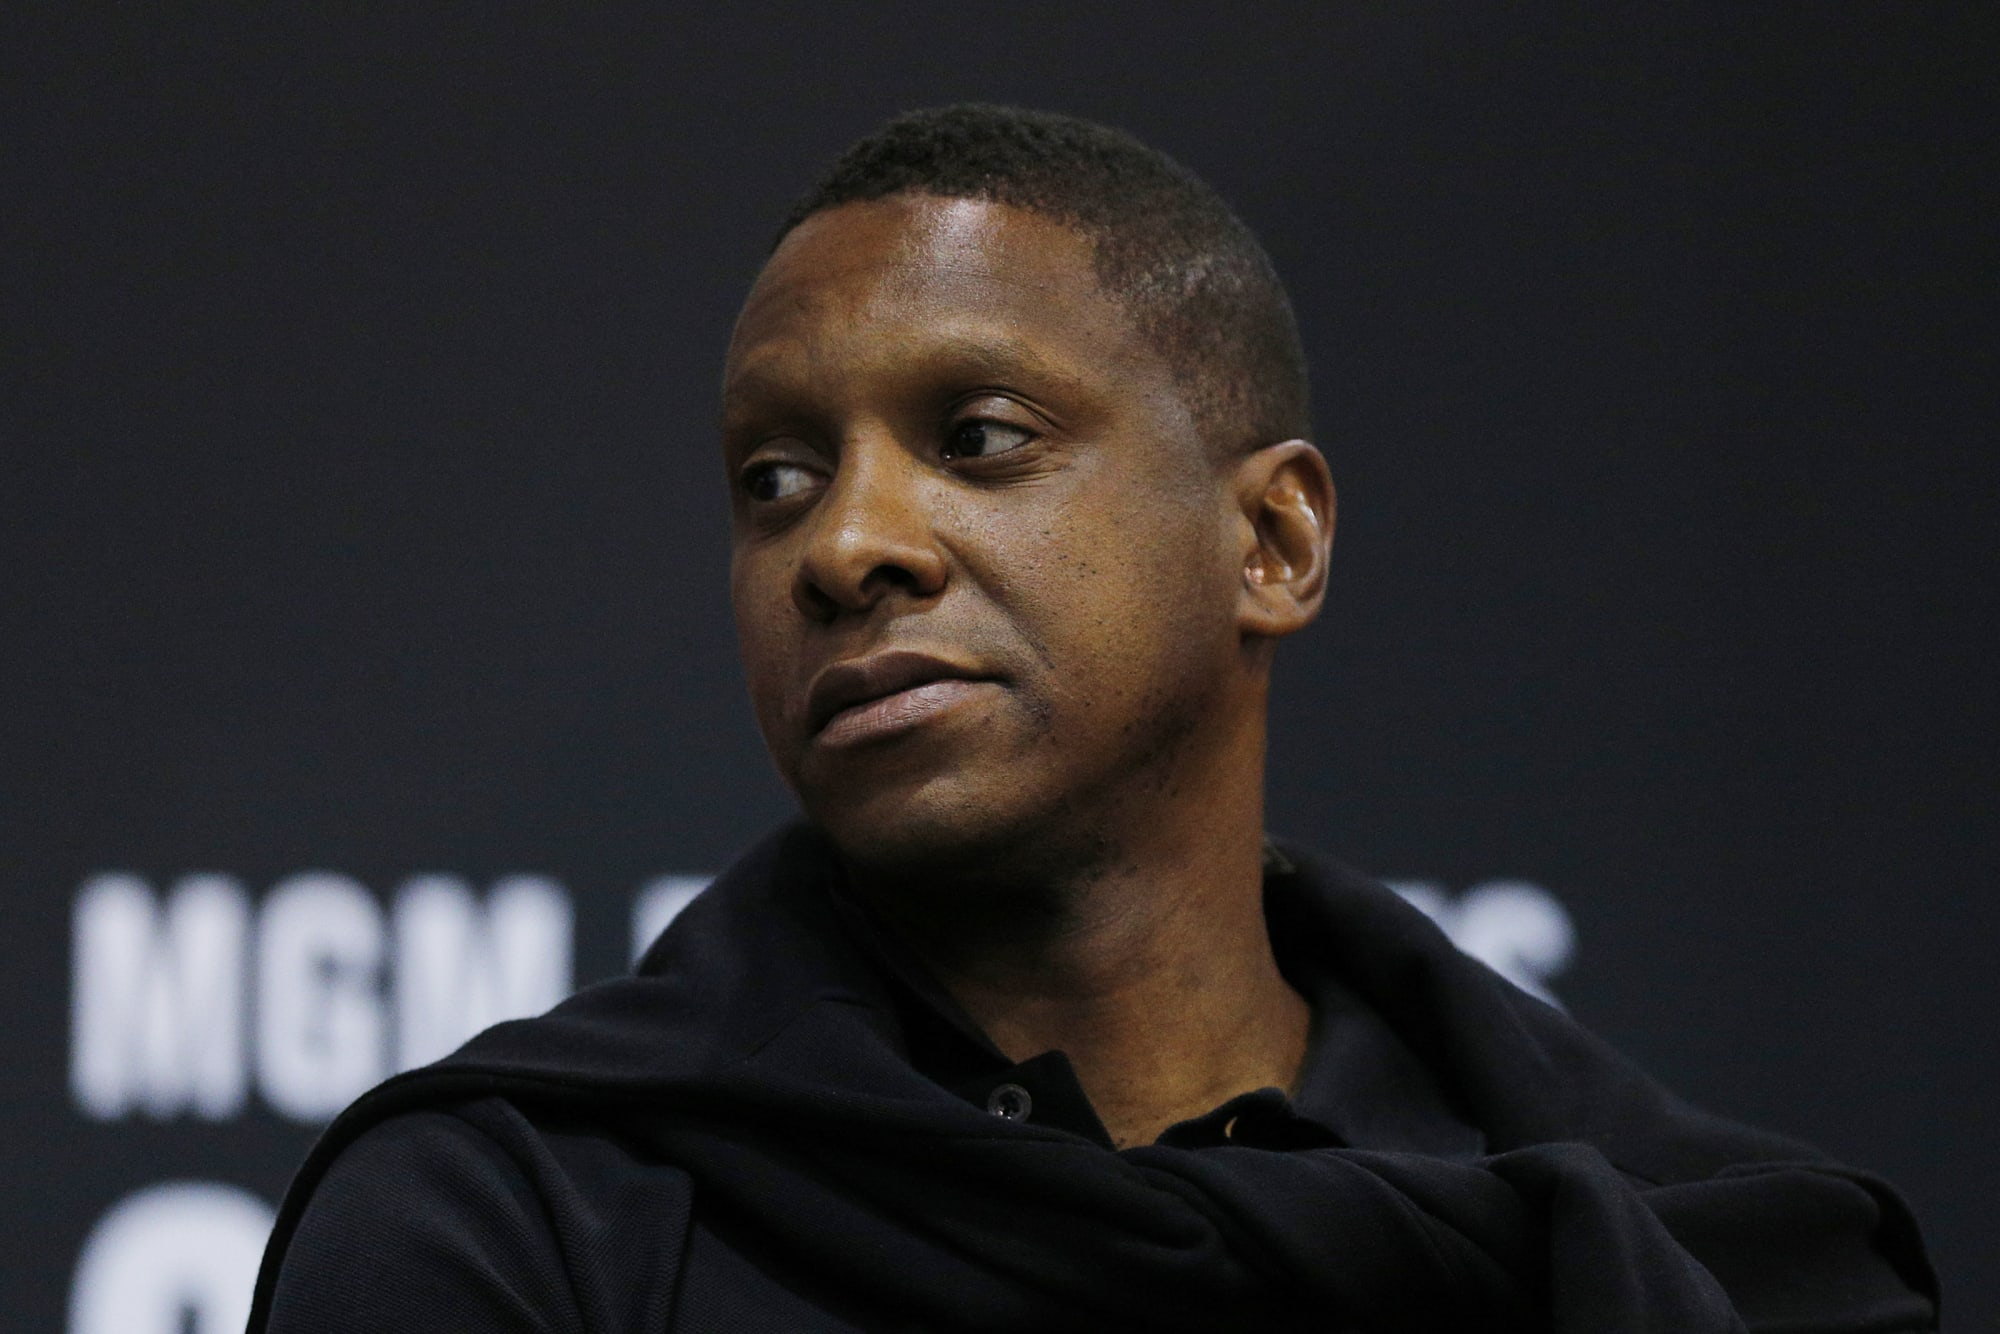 Raptors: Masai Ujiri needs to avoid turning into Danny Ainge at the deadline